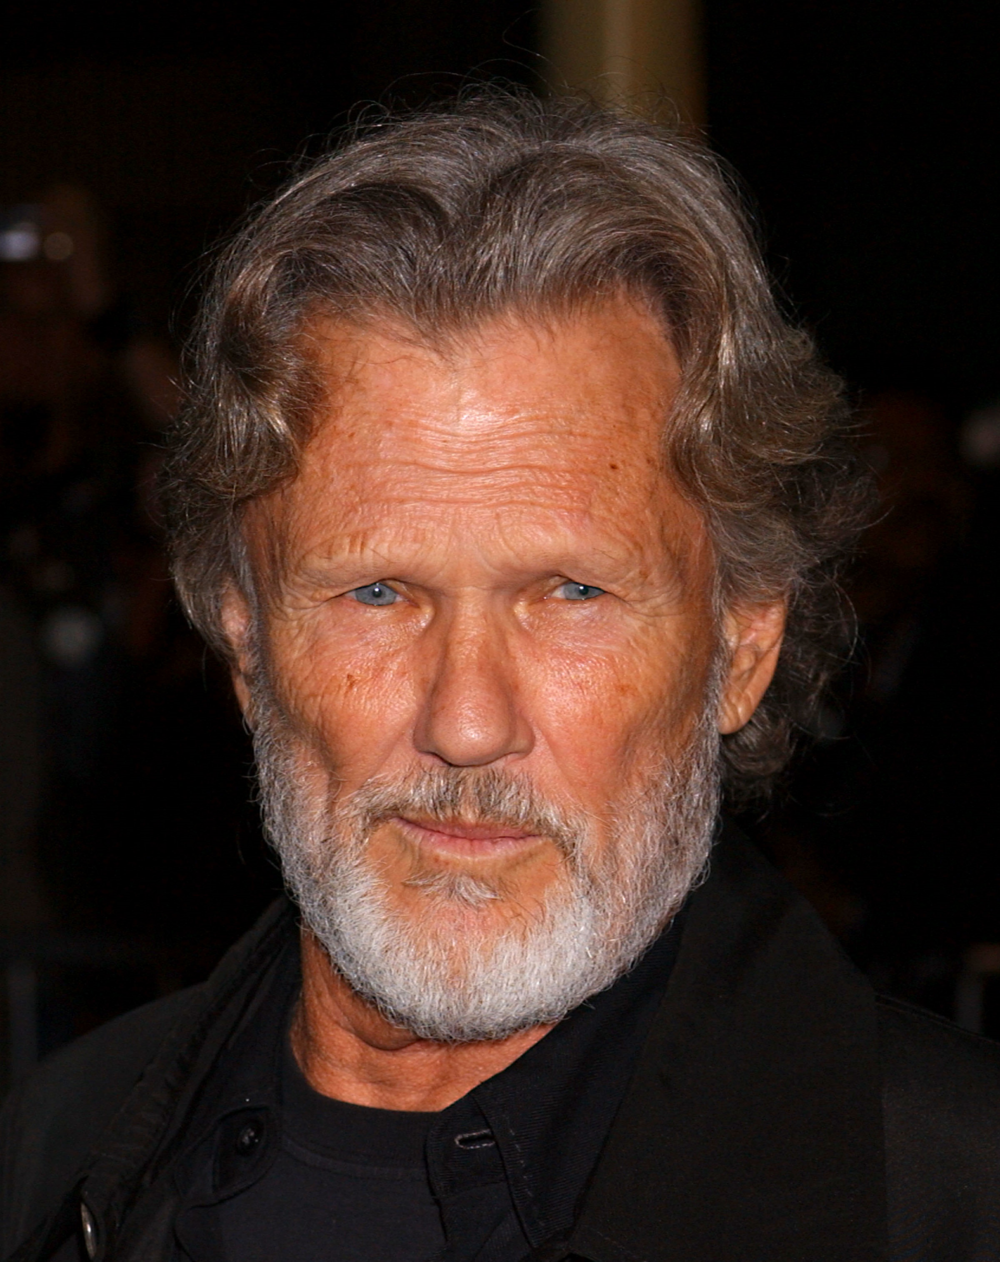 """You don't paddle against the current, you paddle with it.  And if you get good at it, you throw away the oars.""  --Kris Kristofferson, singer, songwriter, actor, Rhodes scholar, still-hot old guy."